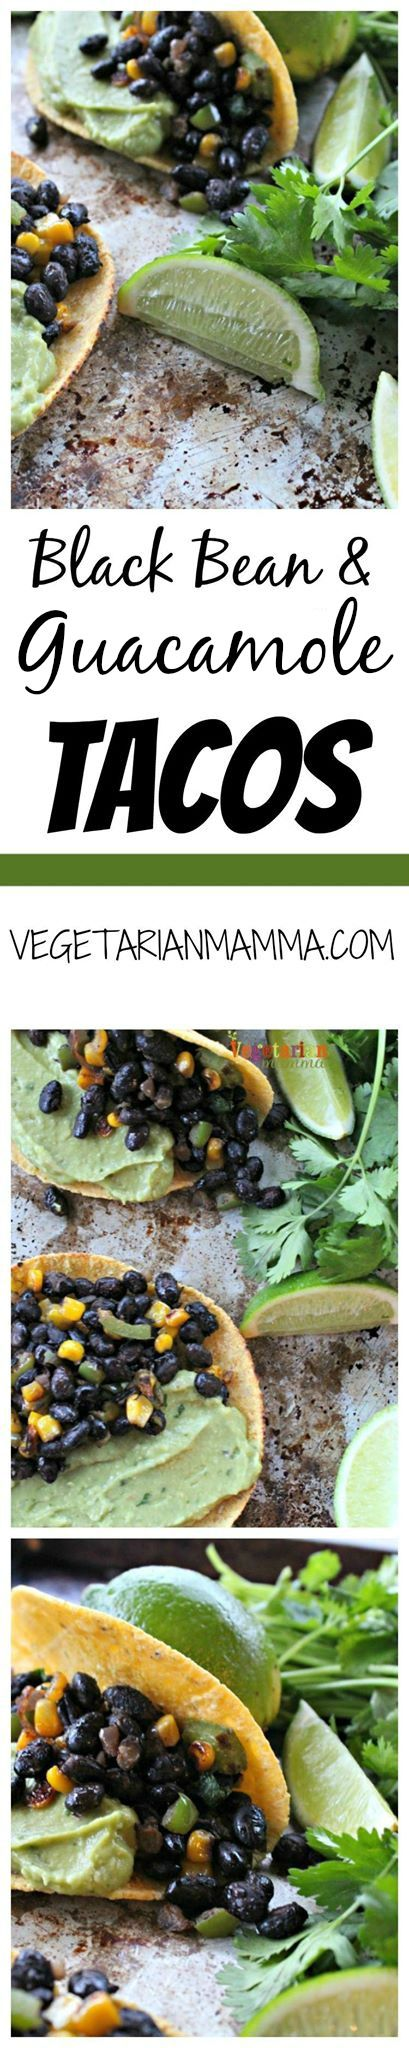 Best 25 recipe creator ideas on pinterest green been image black bean and guacamole tacos forumfinder Gallery